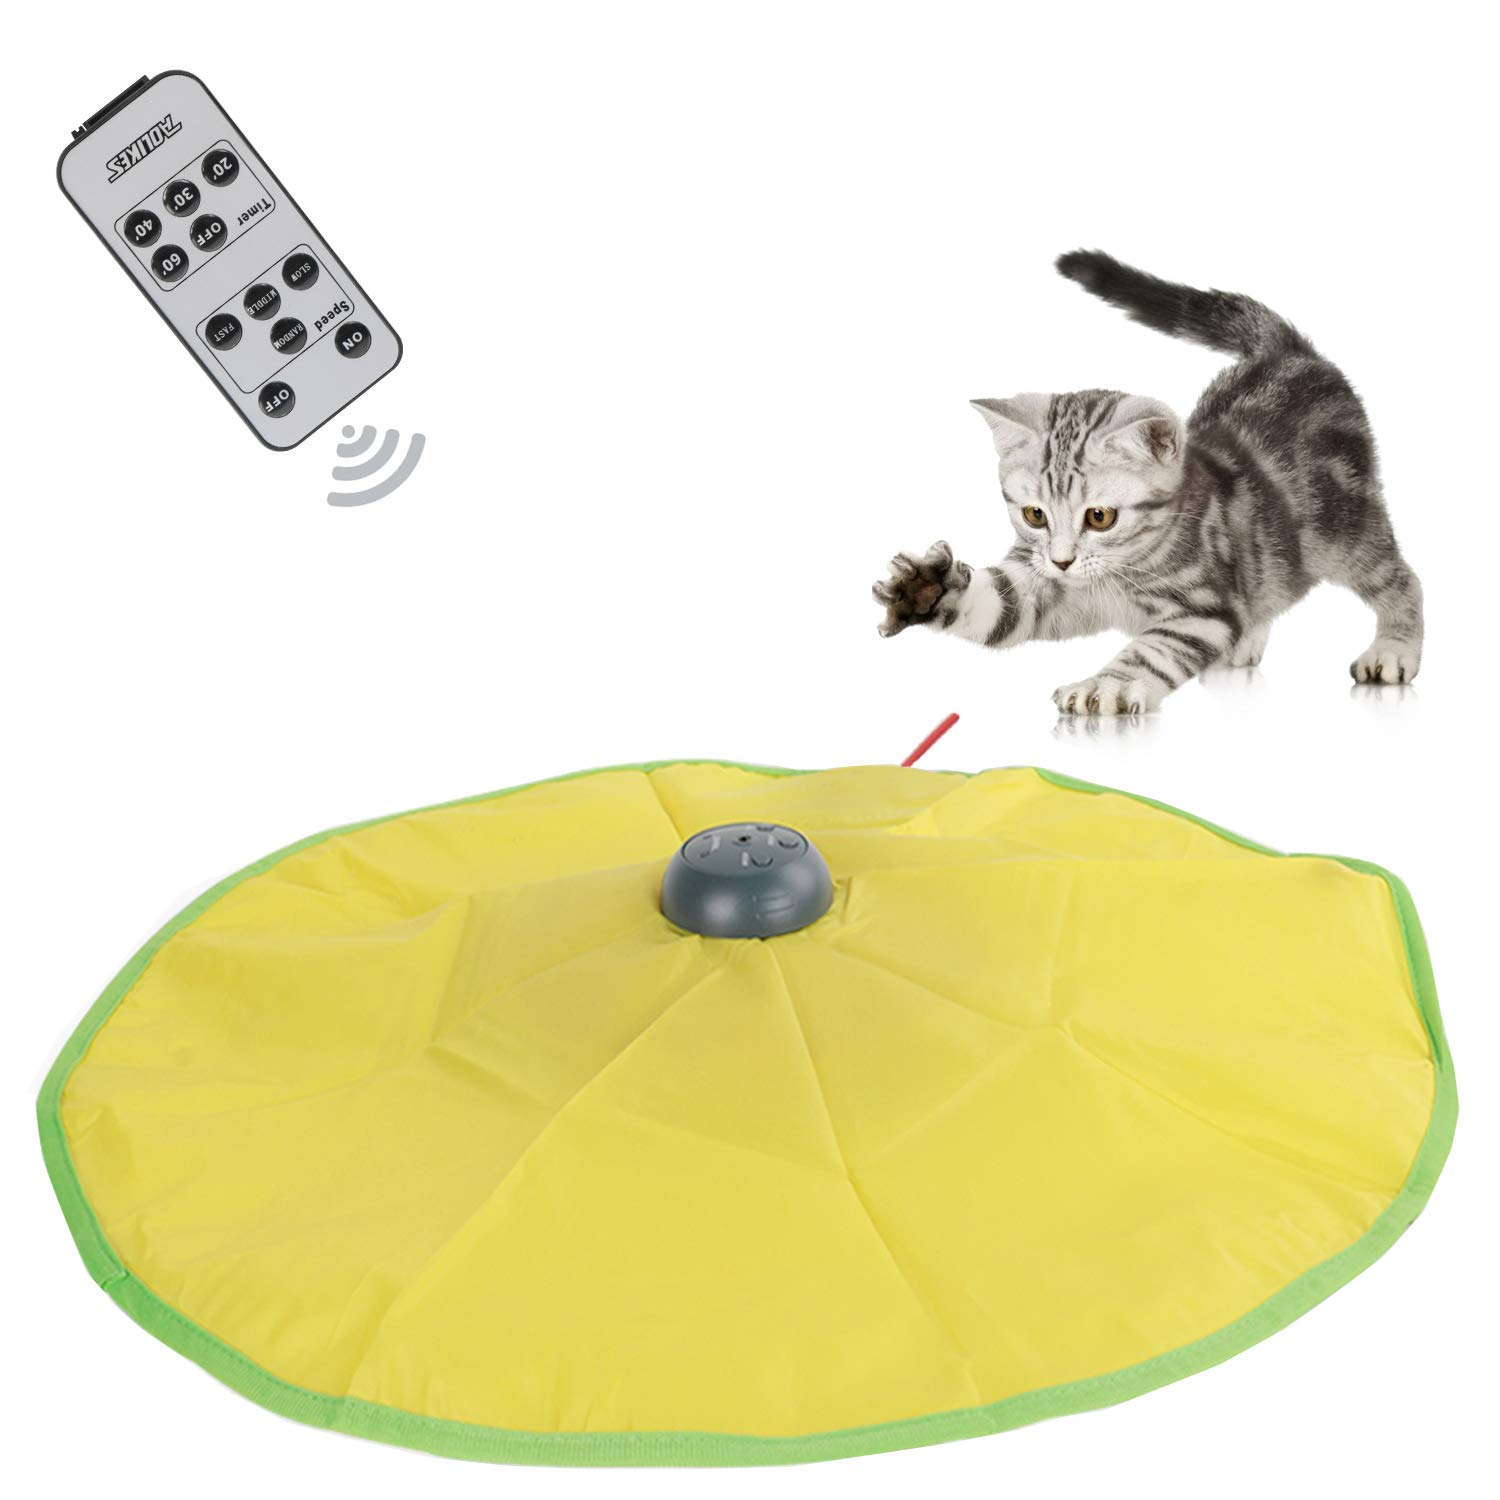 AOLIKES Electronic Cat Toy Interactive, V4 Version Cat Gym - Running Tool with Remote Control by AOLIKES